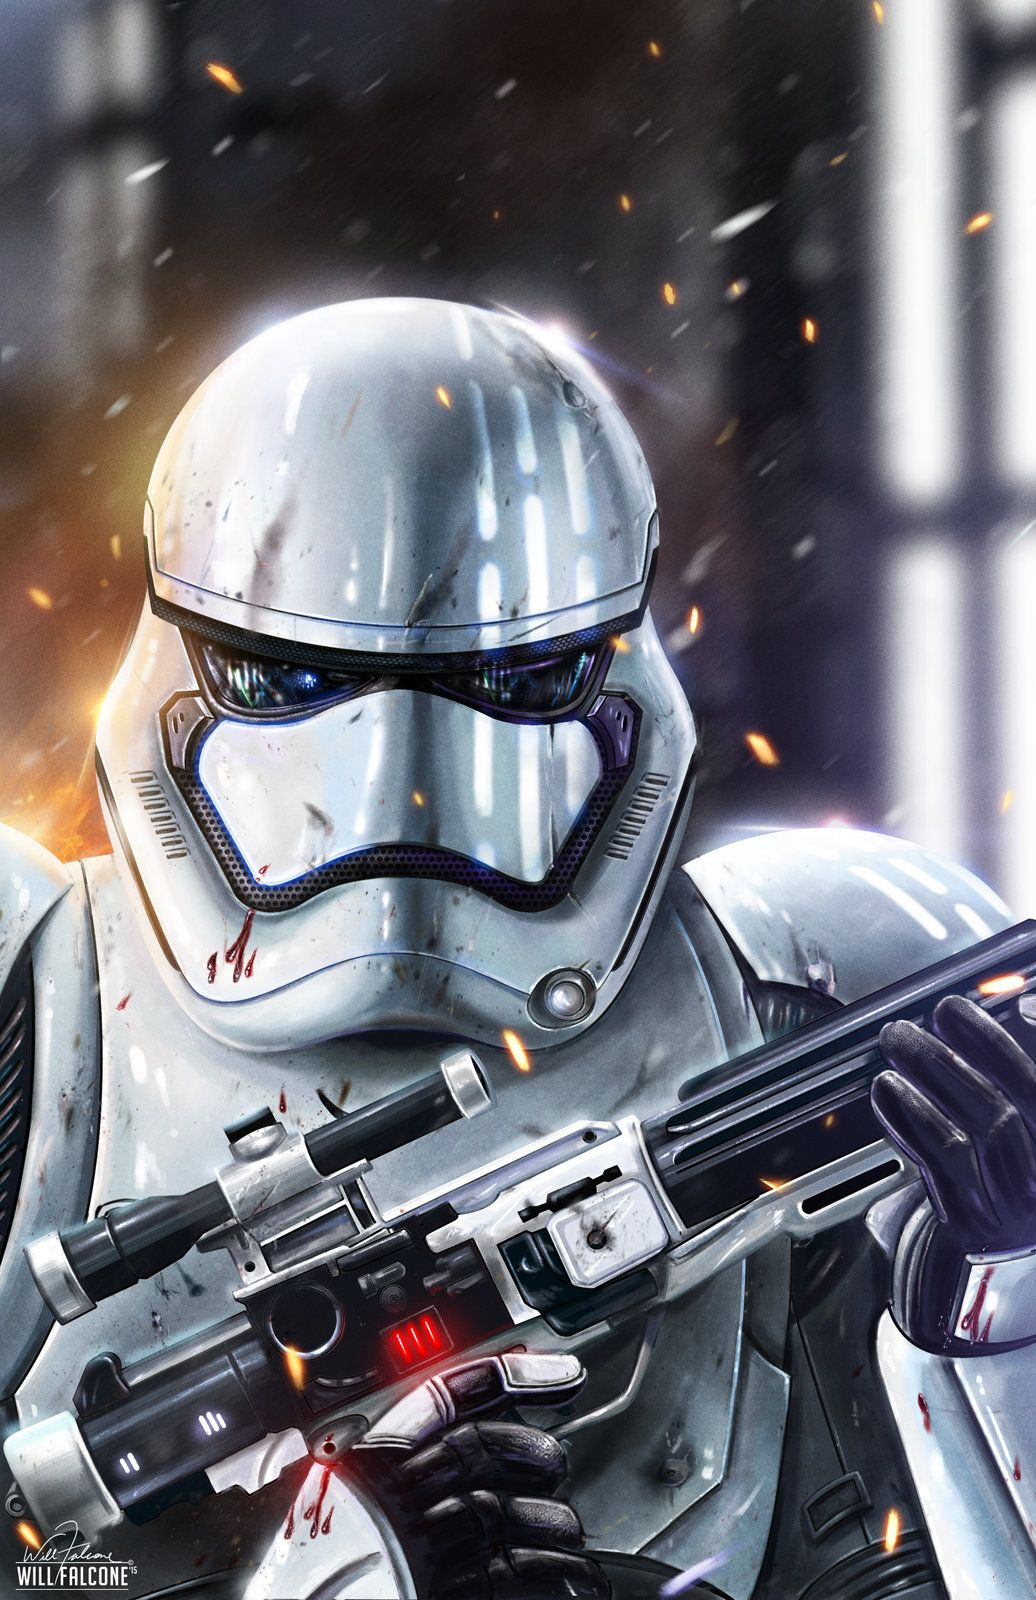 Stormtrooper, Will Falcone on ArtStation at https://www.artstation.com/artwork/stormtrooper-27ae75ef-f59a-4dff-80c0-93d6f4a7368a